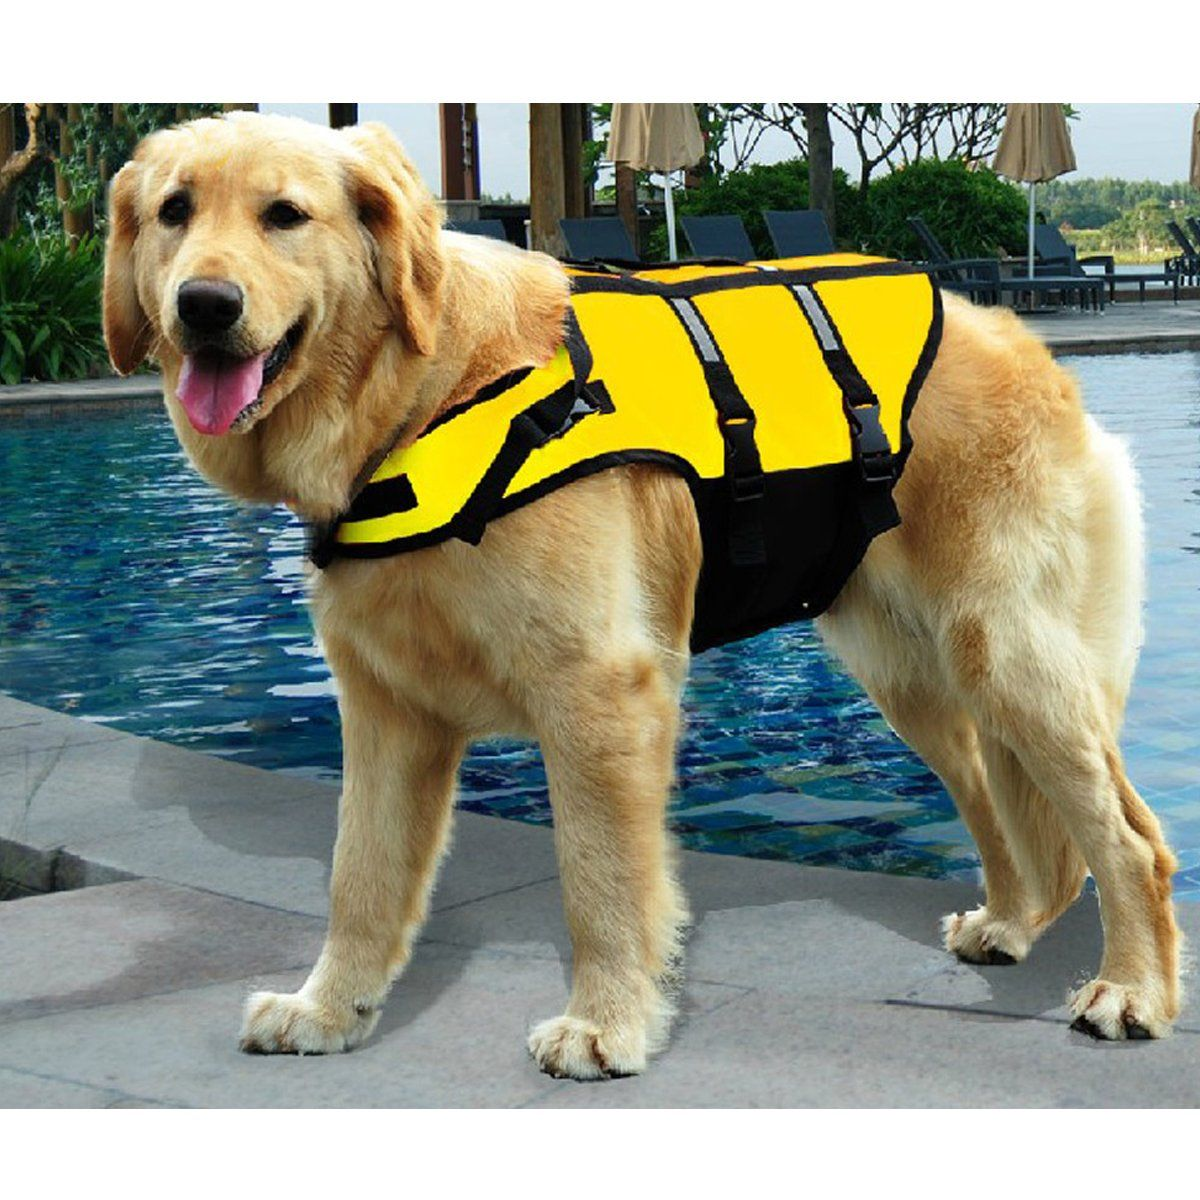 Dog Life Jacket For Dog Lifejacket Lifesaver Safety Reflective Vest Pet Life Preserver With Neck Pad And Reflecting Strip Strong Dog Life Vest Dogs Pet Safety